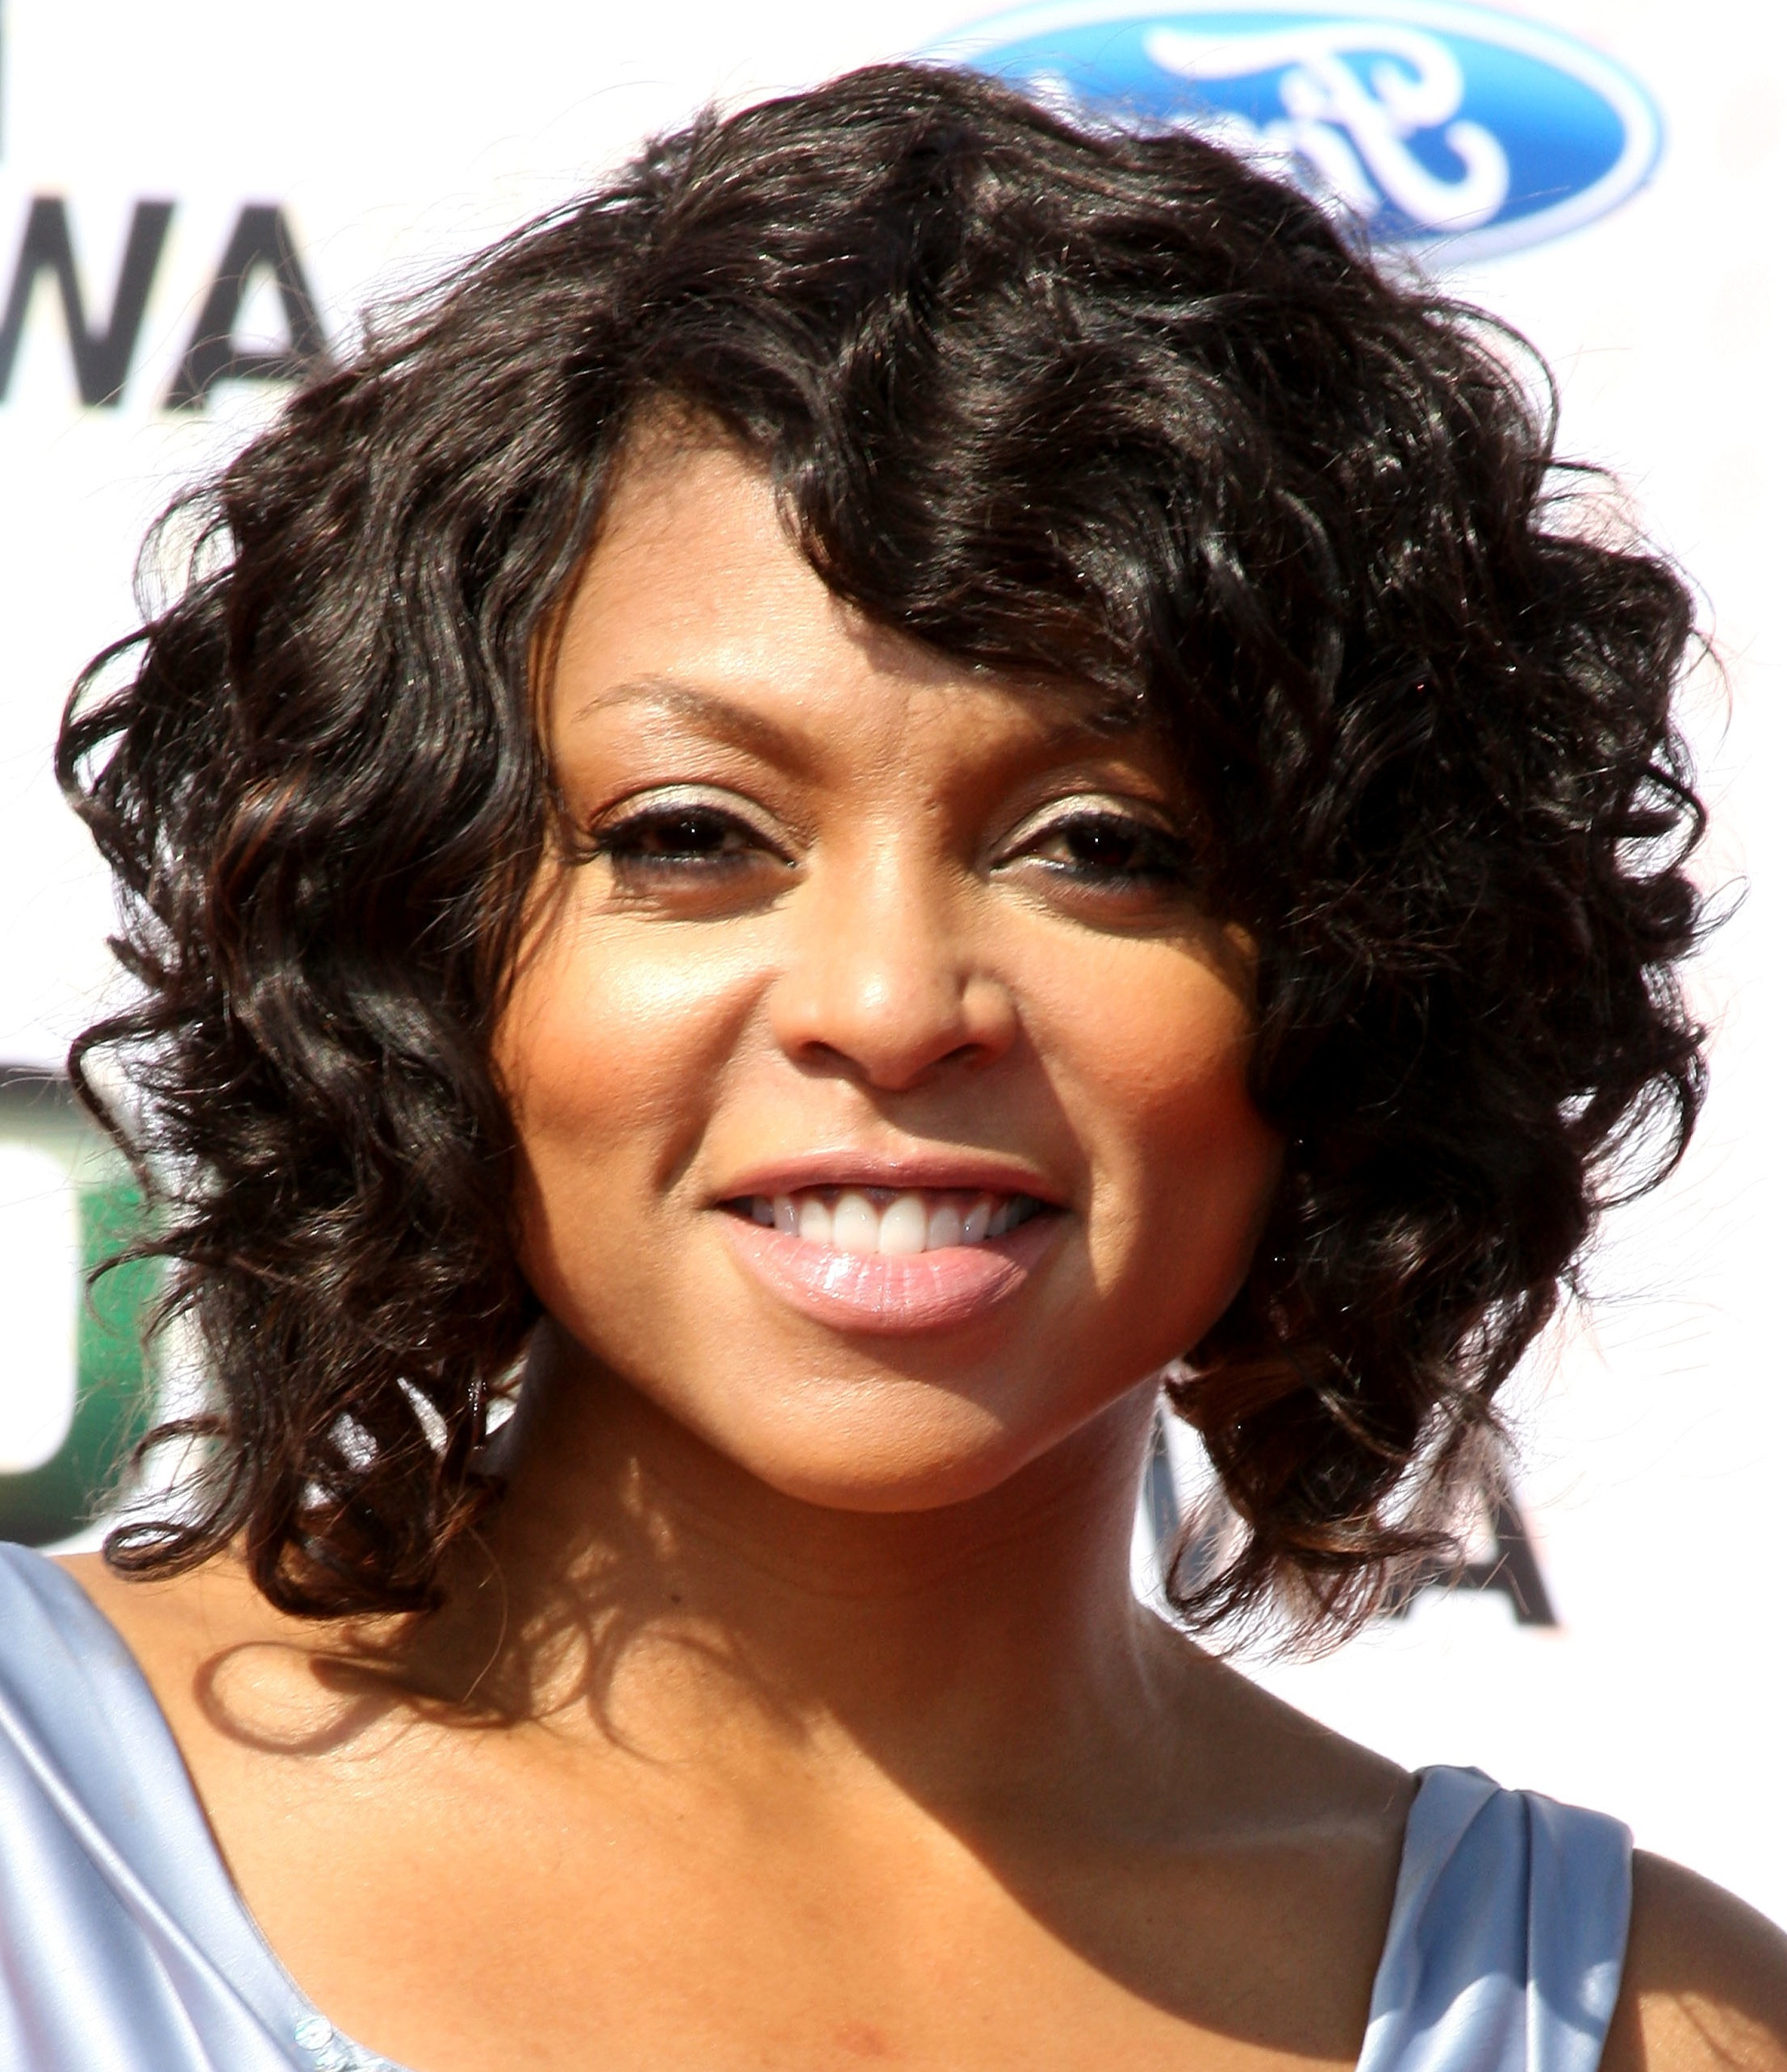 Short Curly Hairstyles For Black Women With Round Faces – Hairstyle Throughout Short Haircuts For Round Faces Black Hair (View 11 of 25)